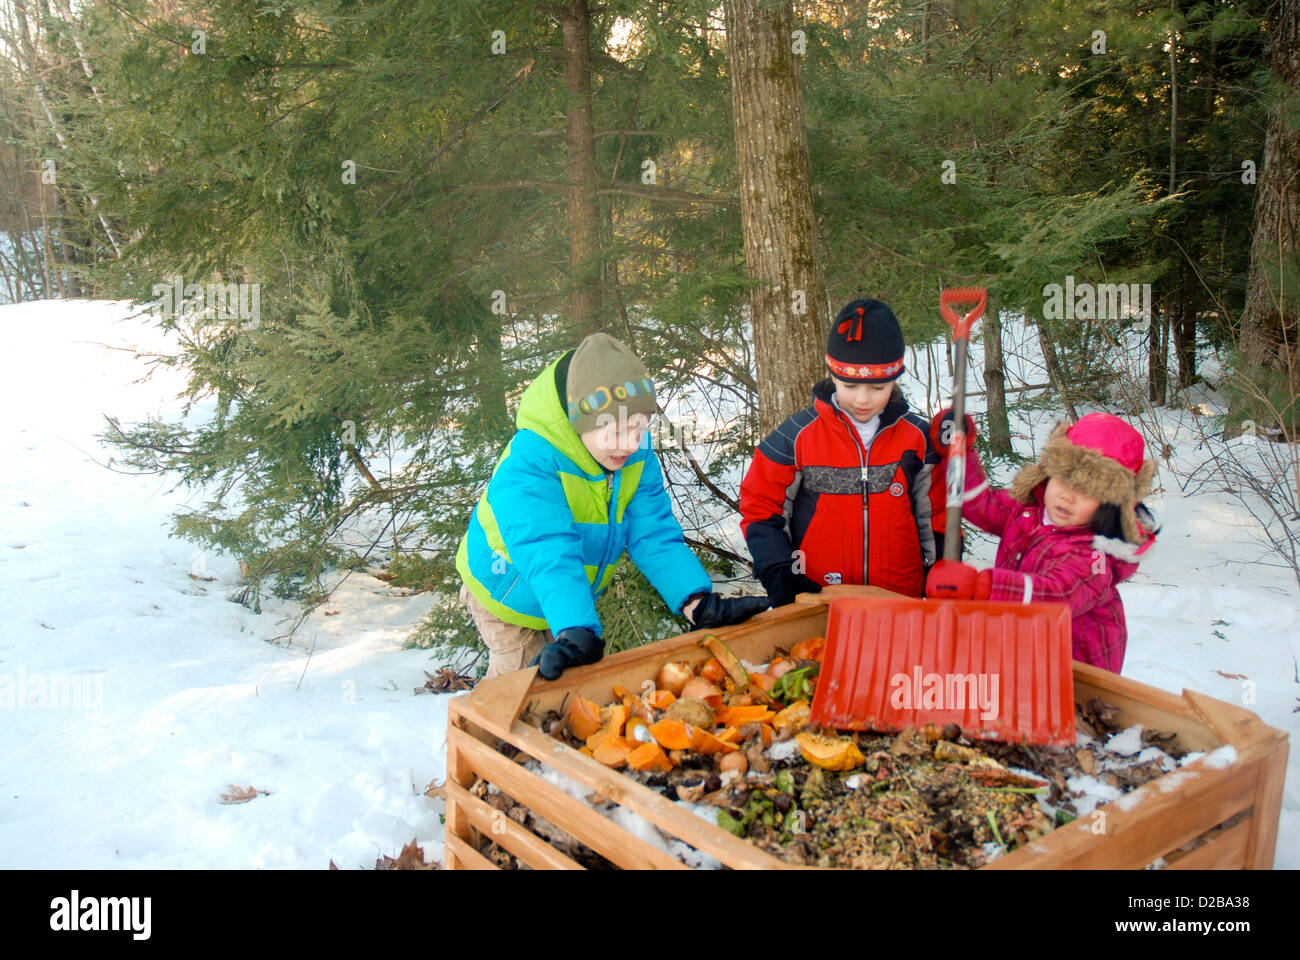 Girls Dumping Food Scraps Into Compost Bin - Stock Image